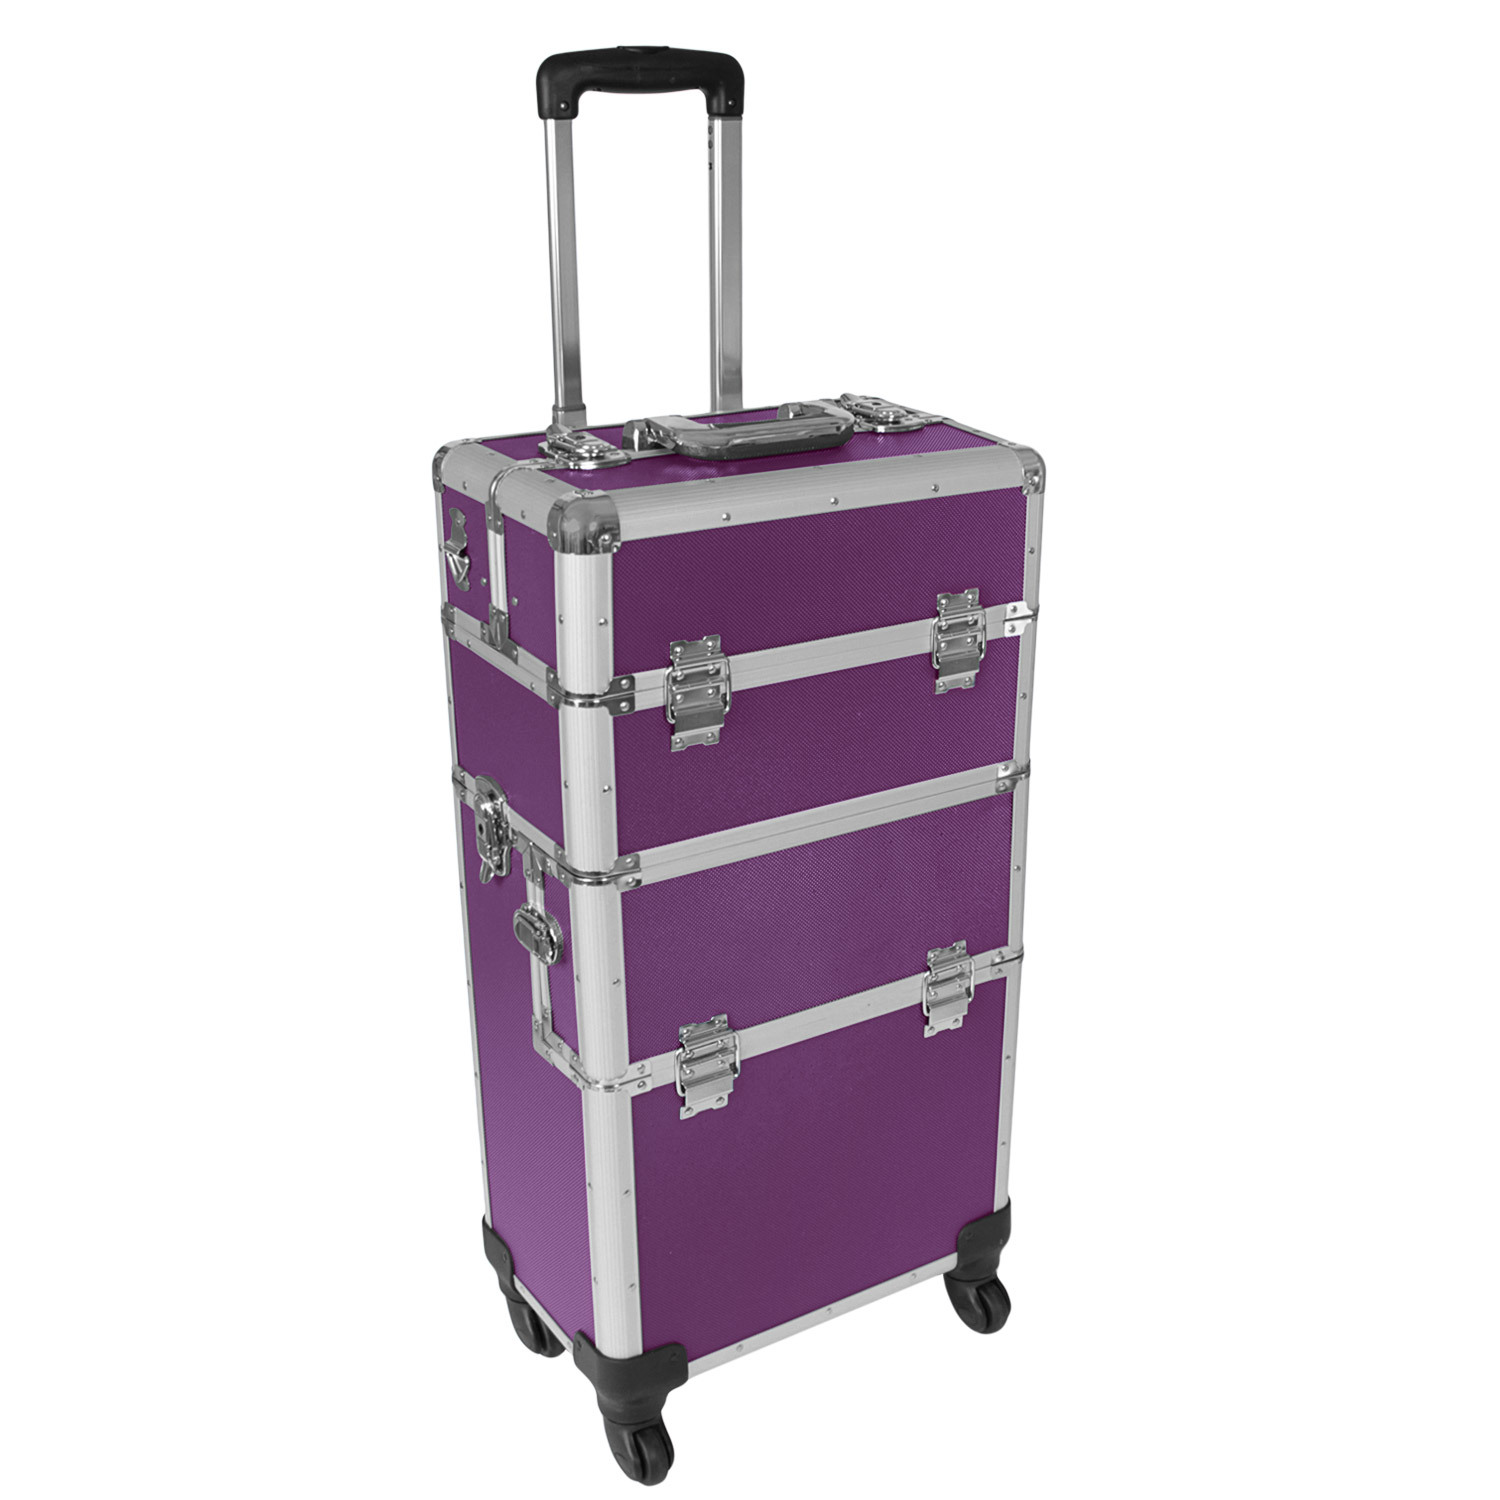 make up werkzeug visagisten koffer trolley pilotenkoffer friseurkoffer farbwahl ebay. Black Bedroom Furniture Sets. Home Design Ideas